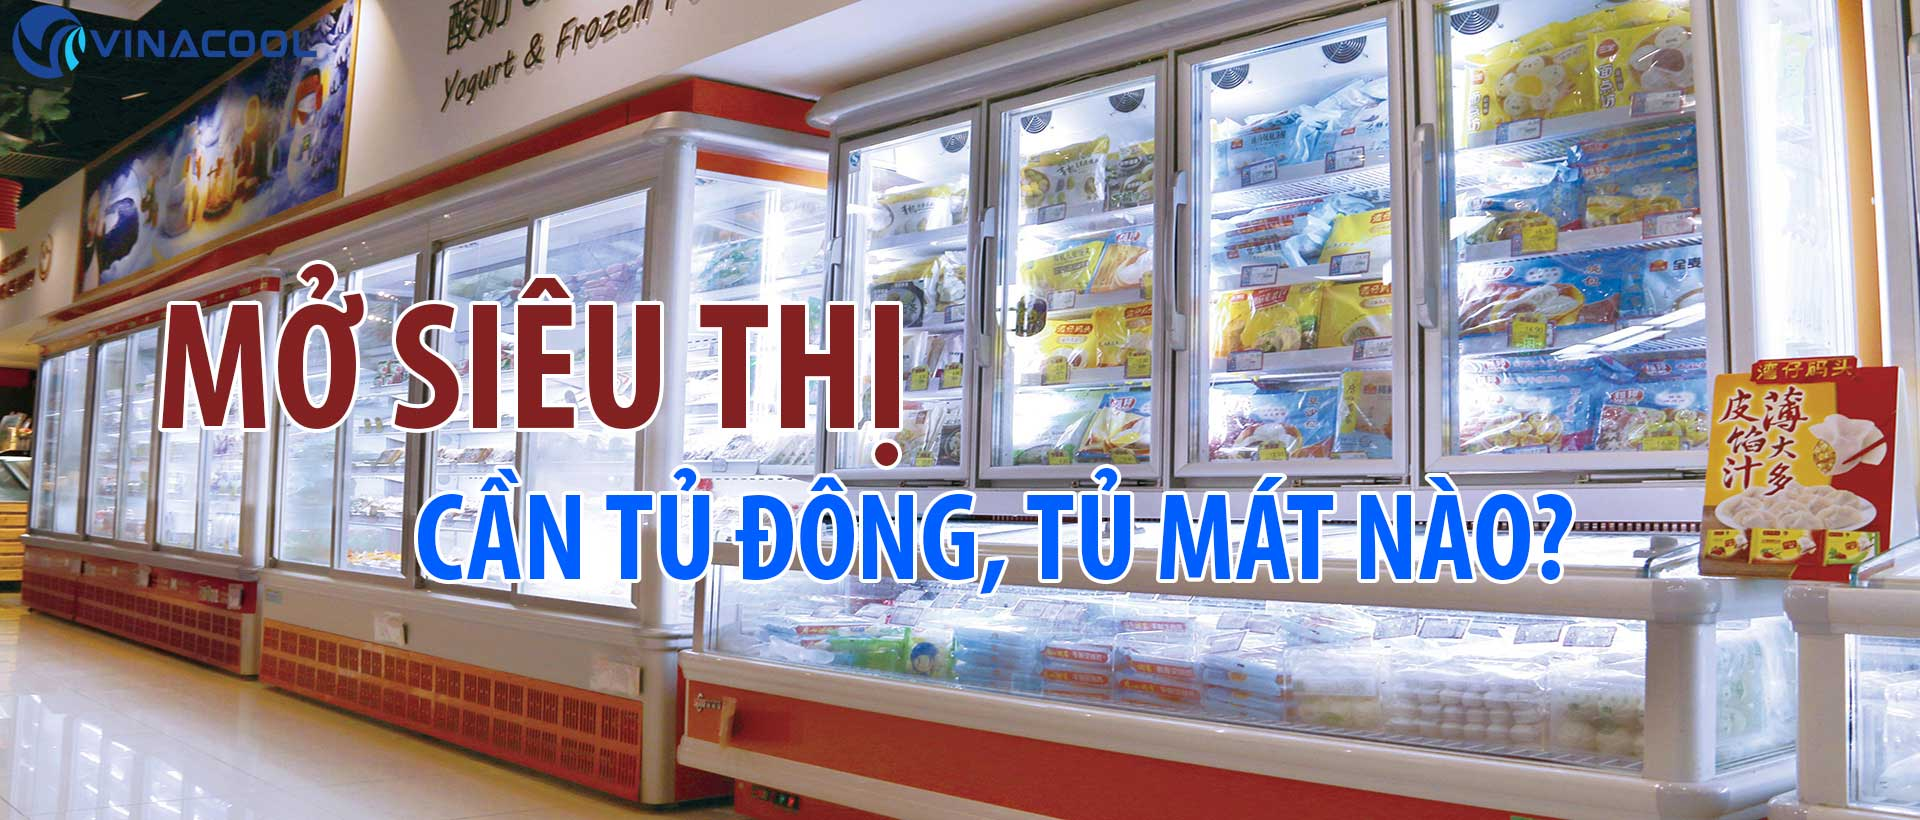 Mở siêu thị cần những loại tủ mát, tủ đông trưng bày nào?